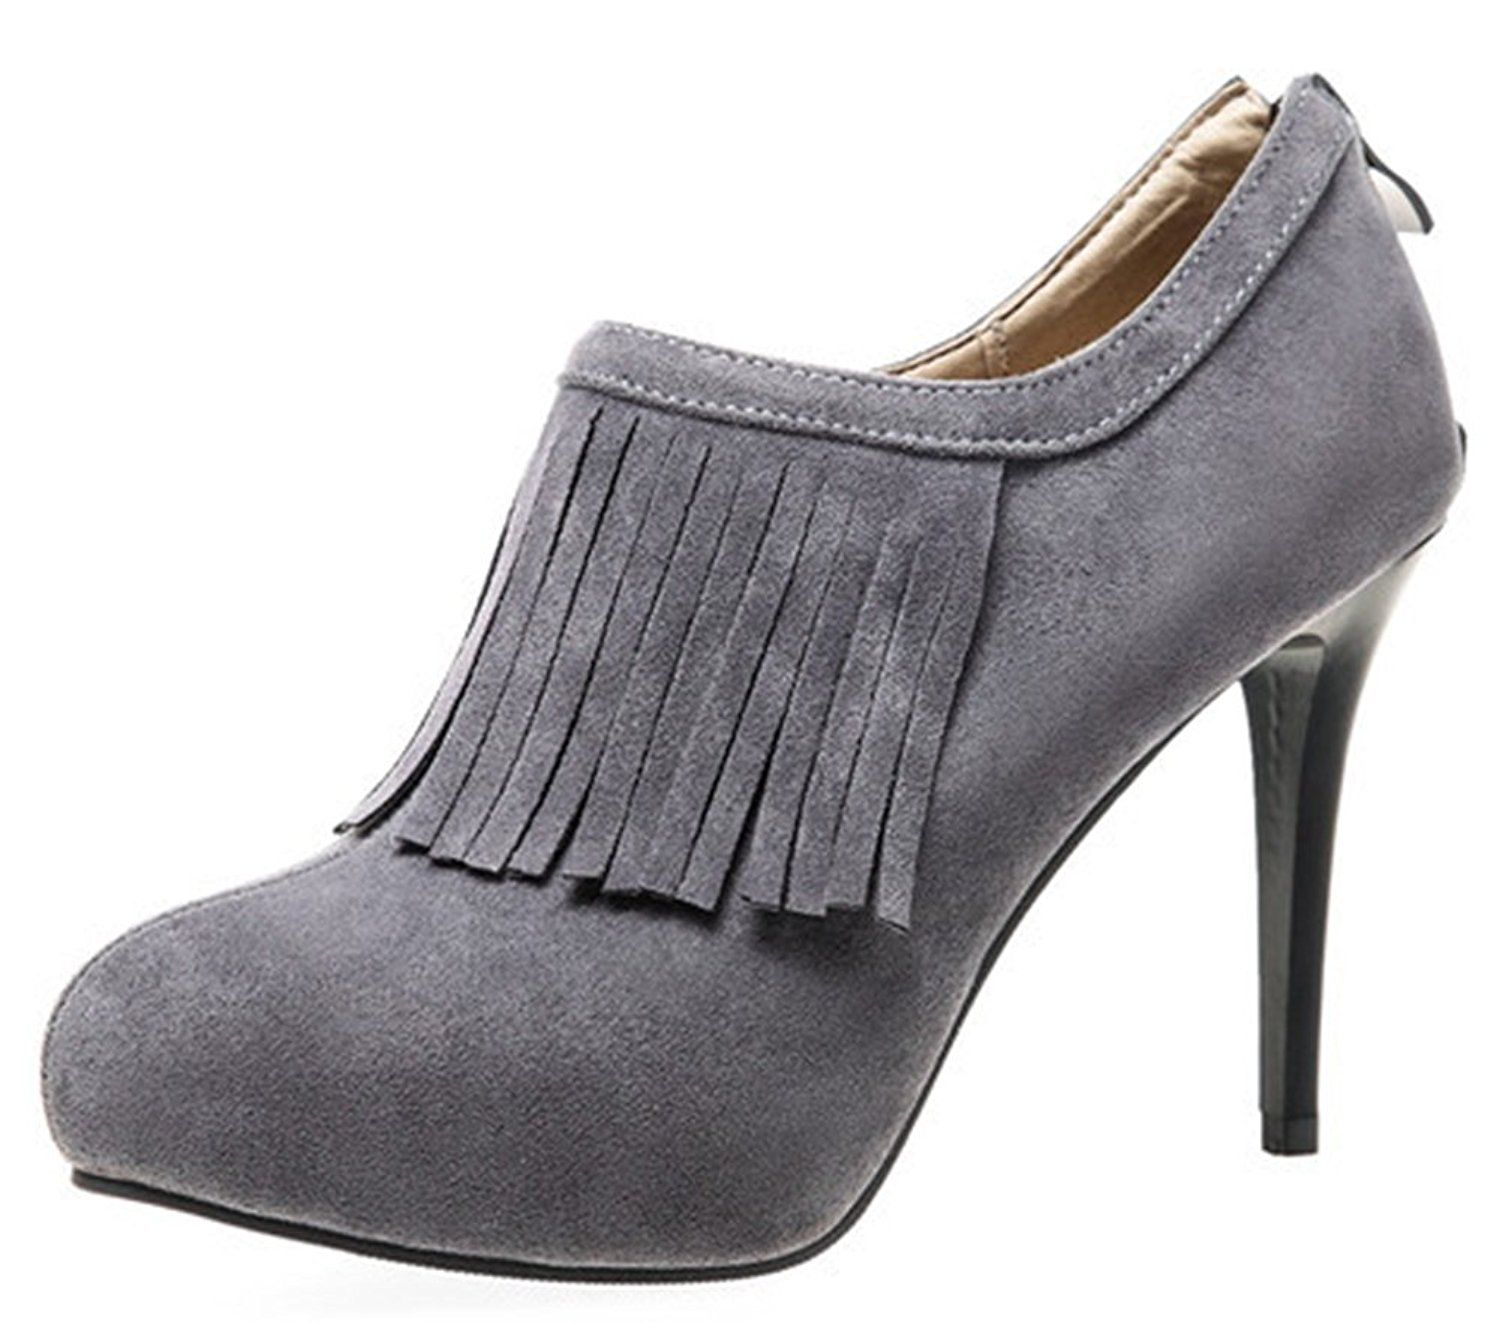 Women's Fashion Sexy Pointed Toe High Heel Bungee Ankle Boots